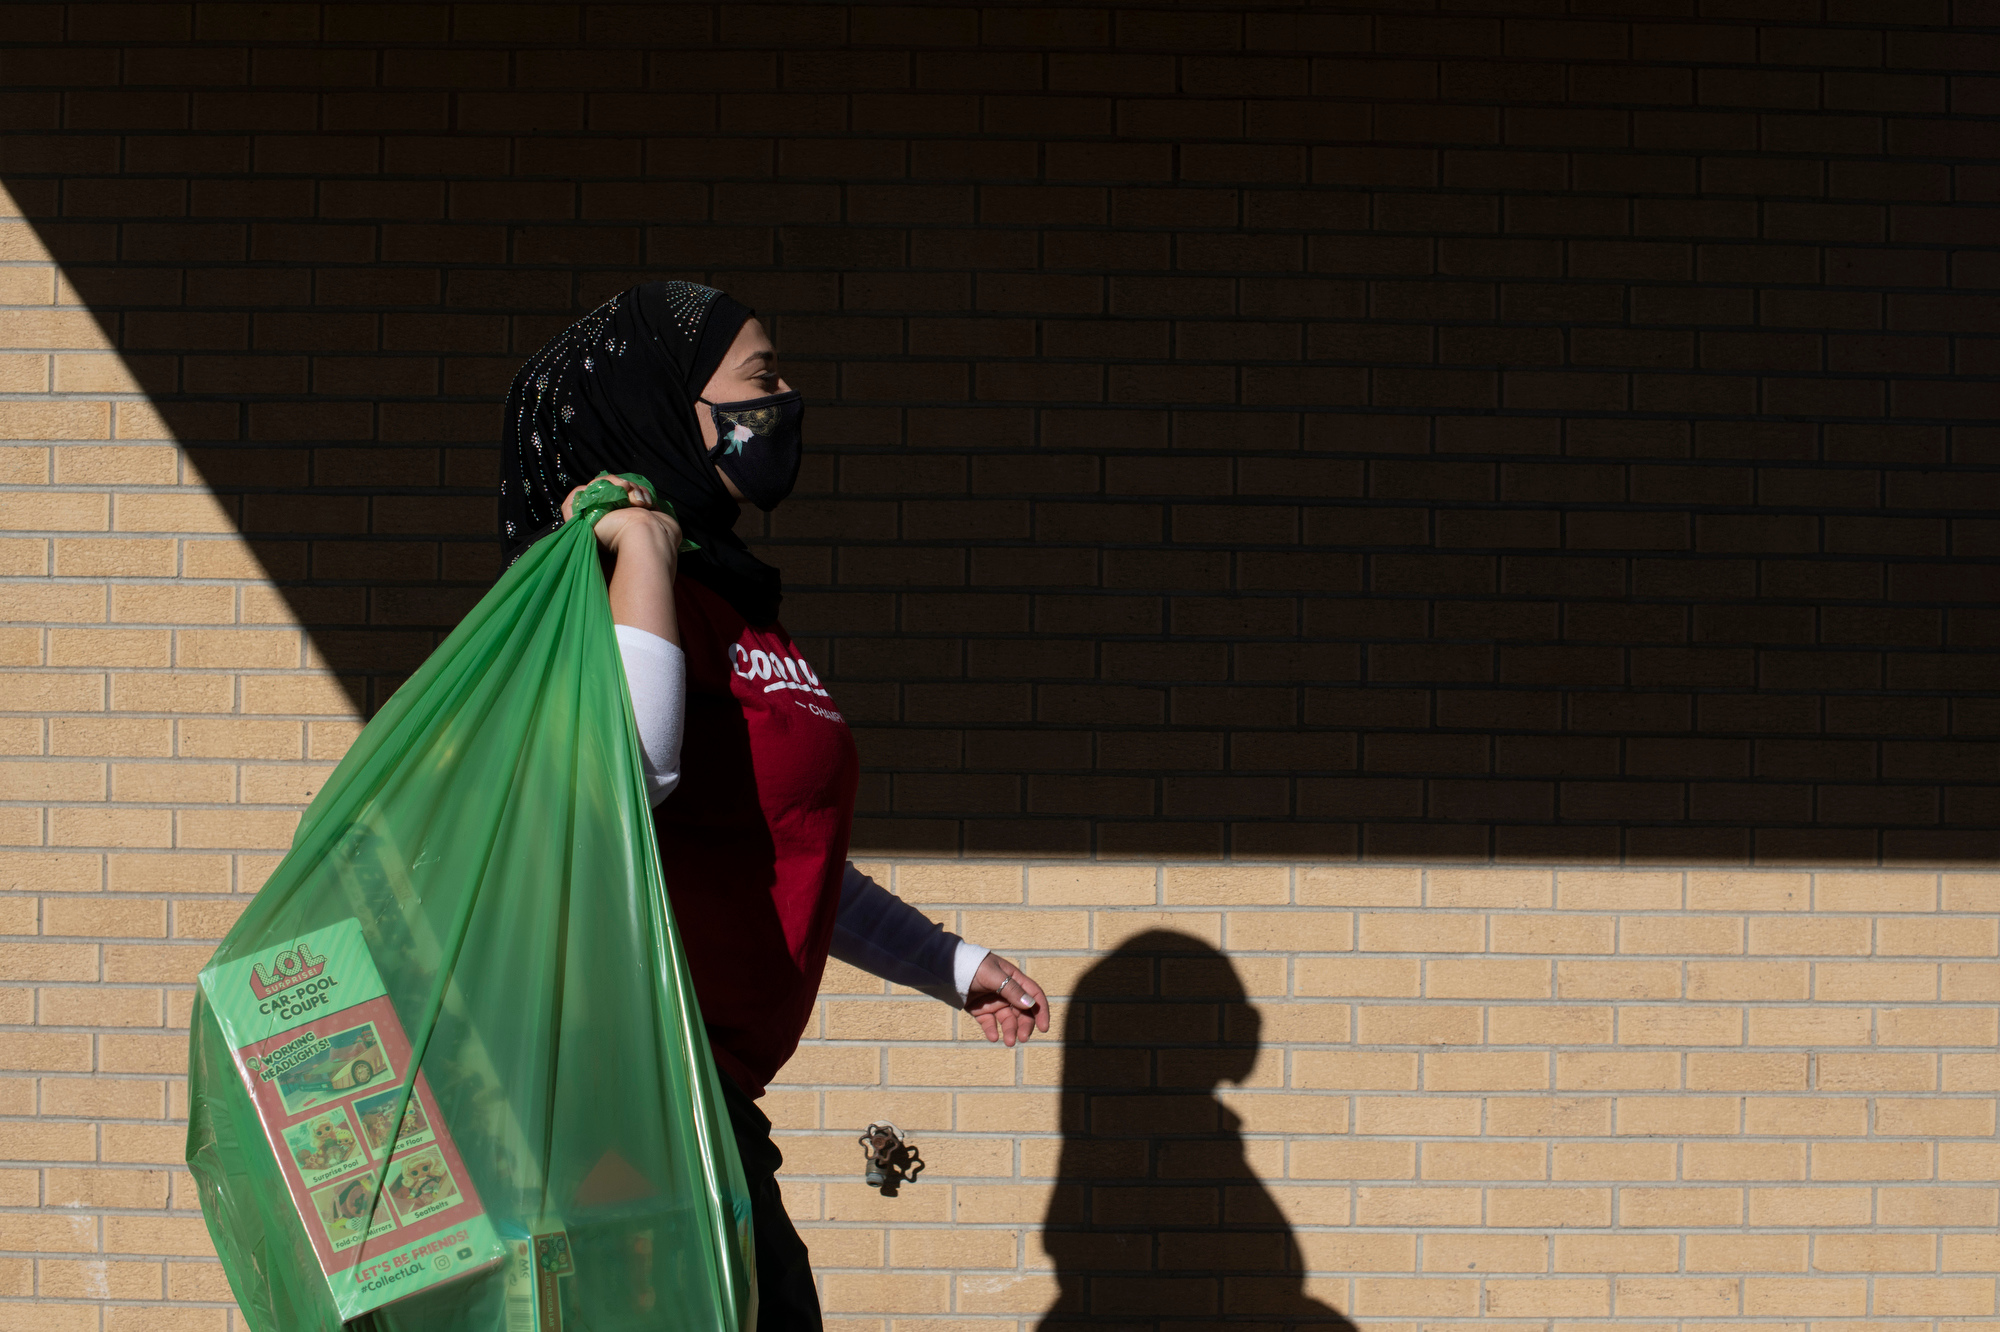 Rawan Bardini, a Salvation Army volunteer, carries a bag of toys for a participant during the Salvation Army Angel Tree program's toy giveaway on Tuesday, Dec. 22, 2020 at the Salvation Army in Aurora, Colorado.